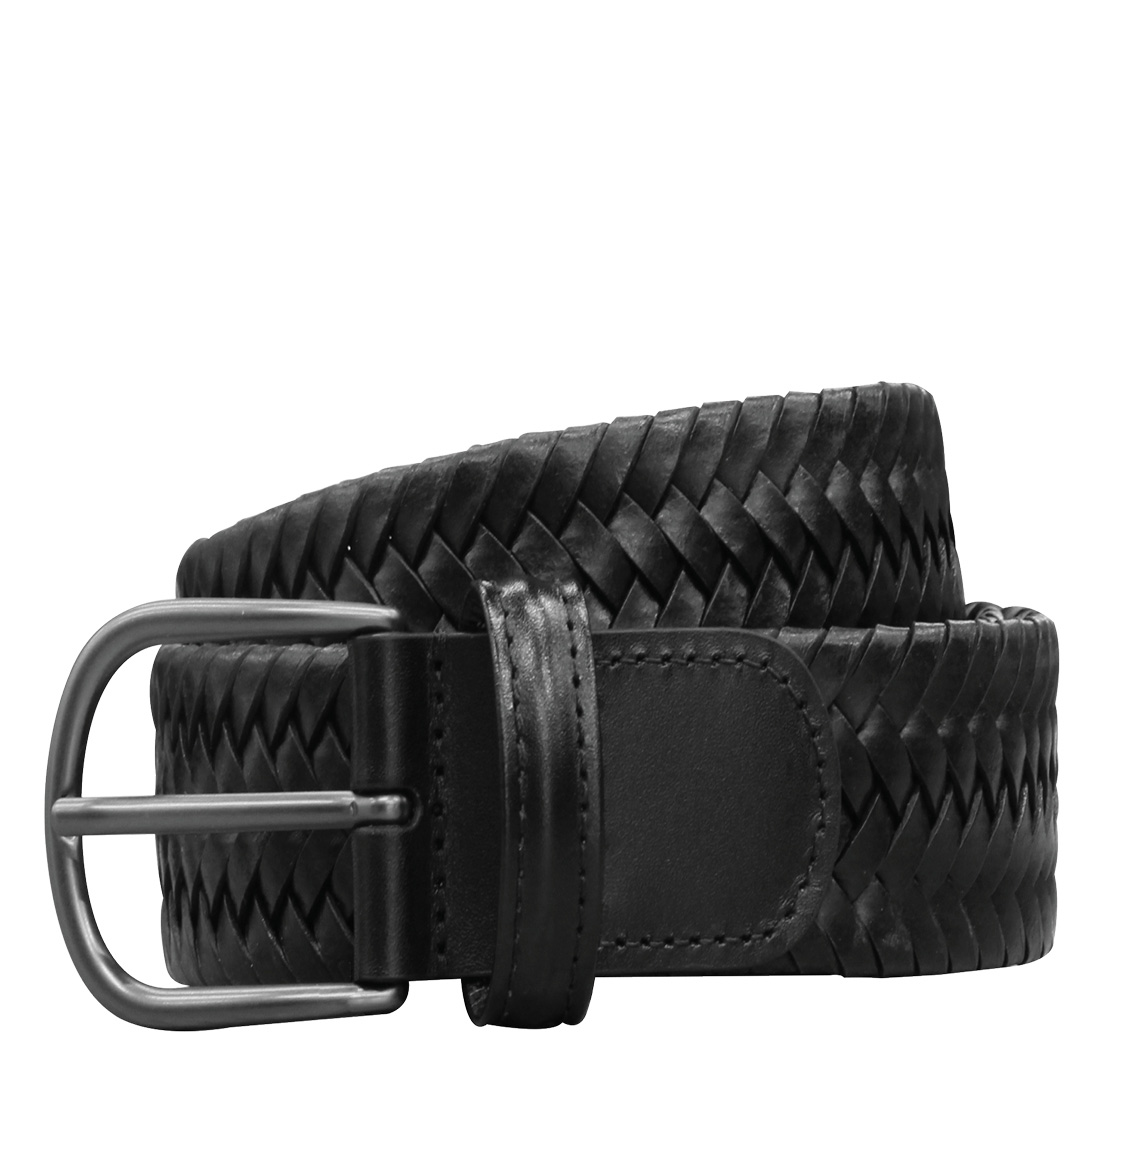 Anderson's Woven Leather Belt Black